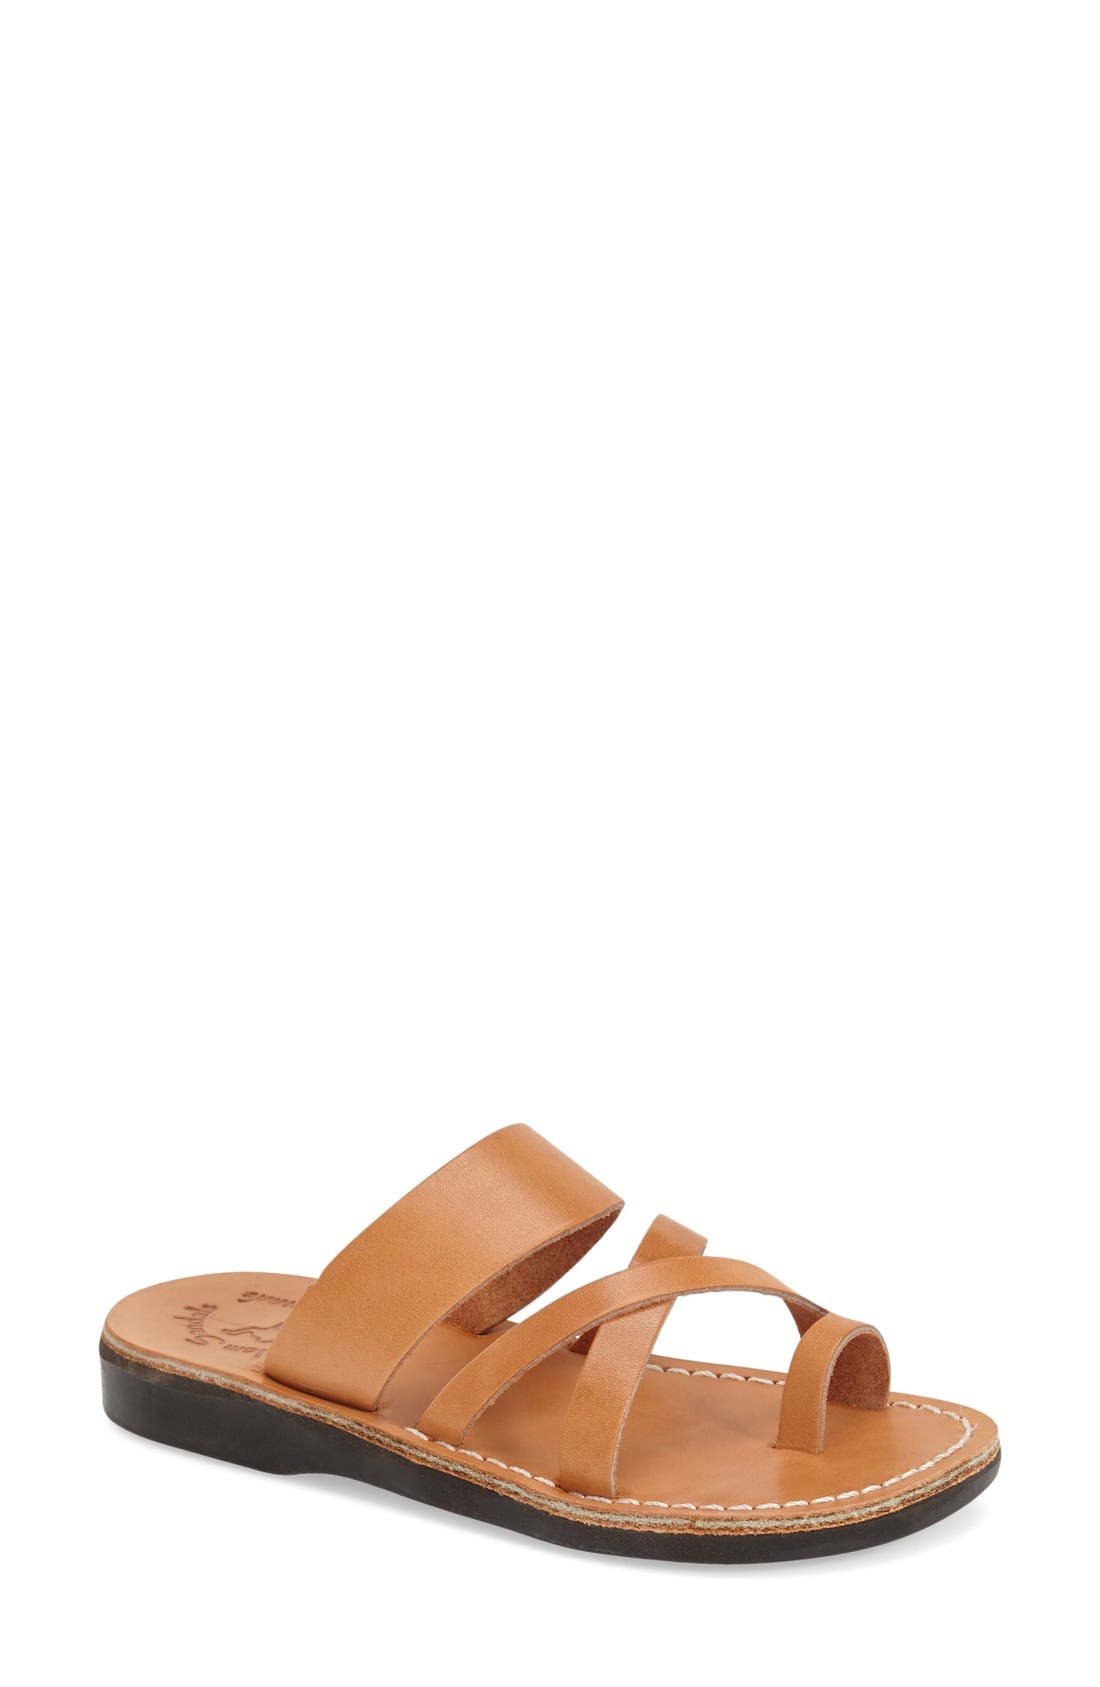 'The Good Shepard' Leather Sandal,                             Main thumbnail 1, color,                             201